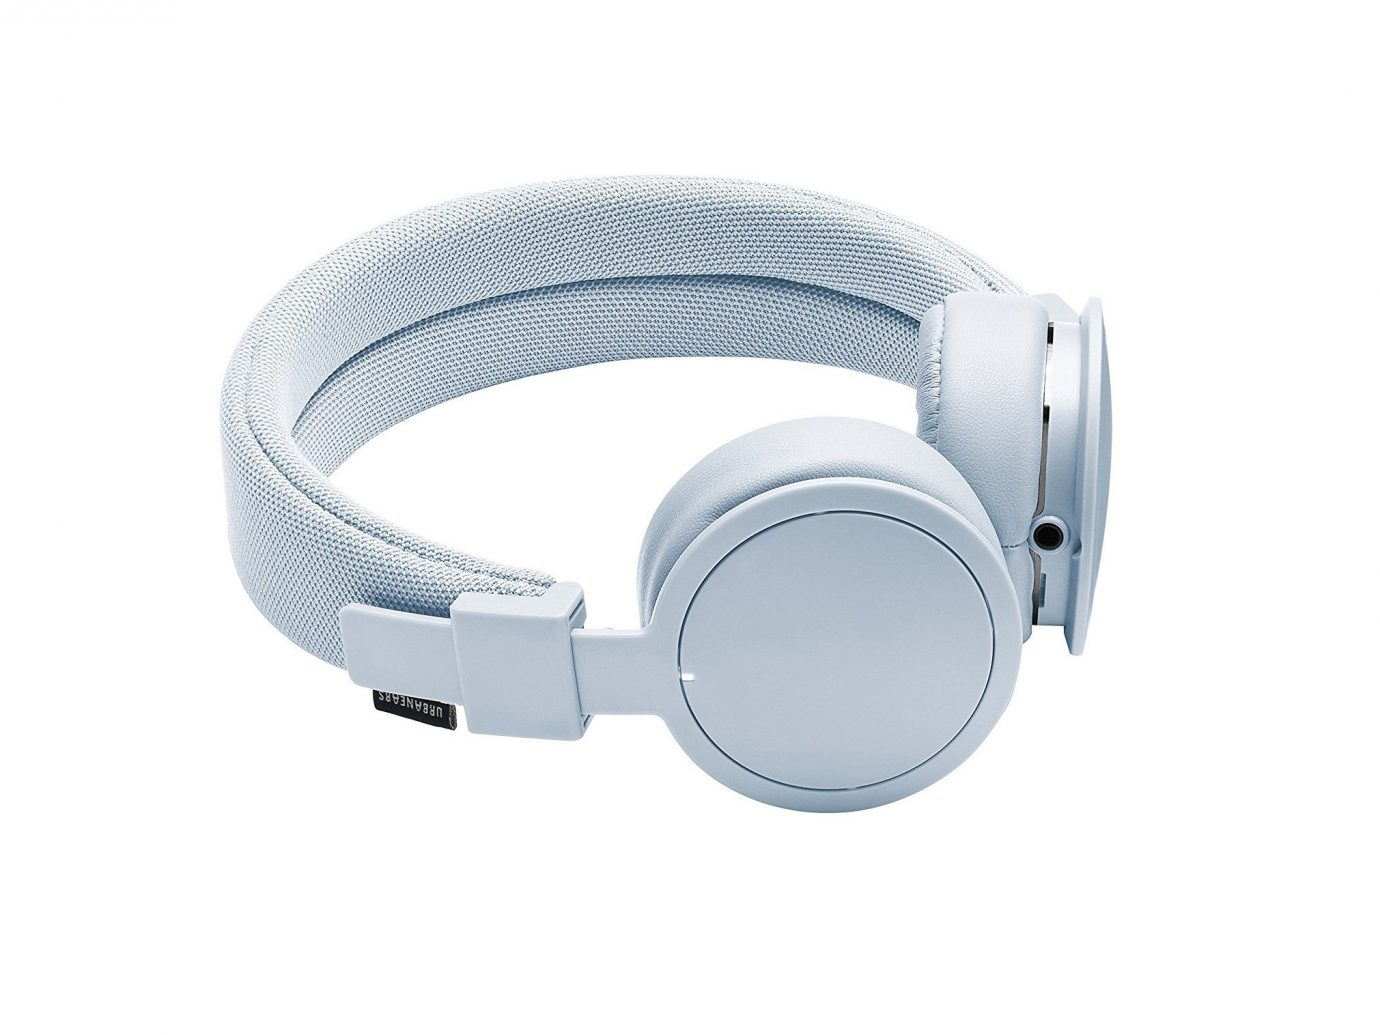 Style + Design headphones audio equipment gadget electronic device technology product audio ear